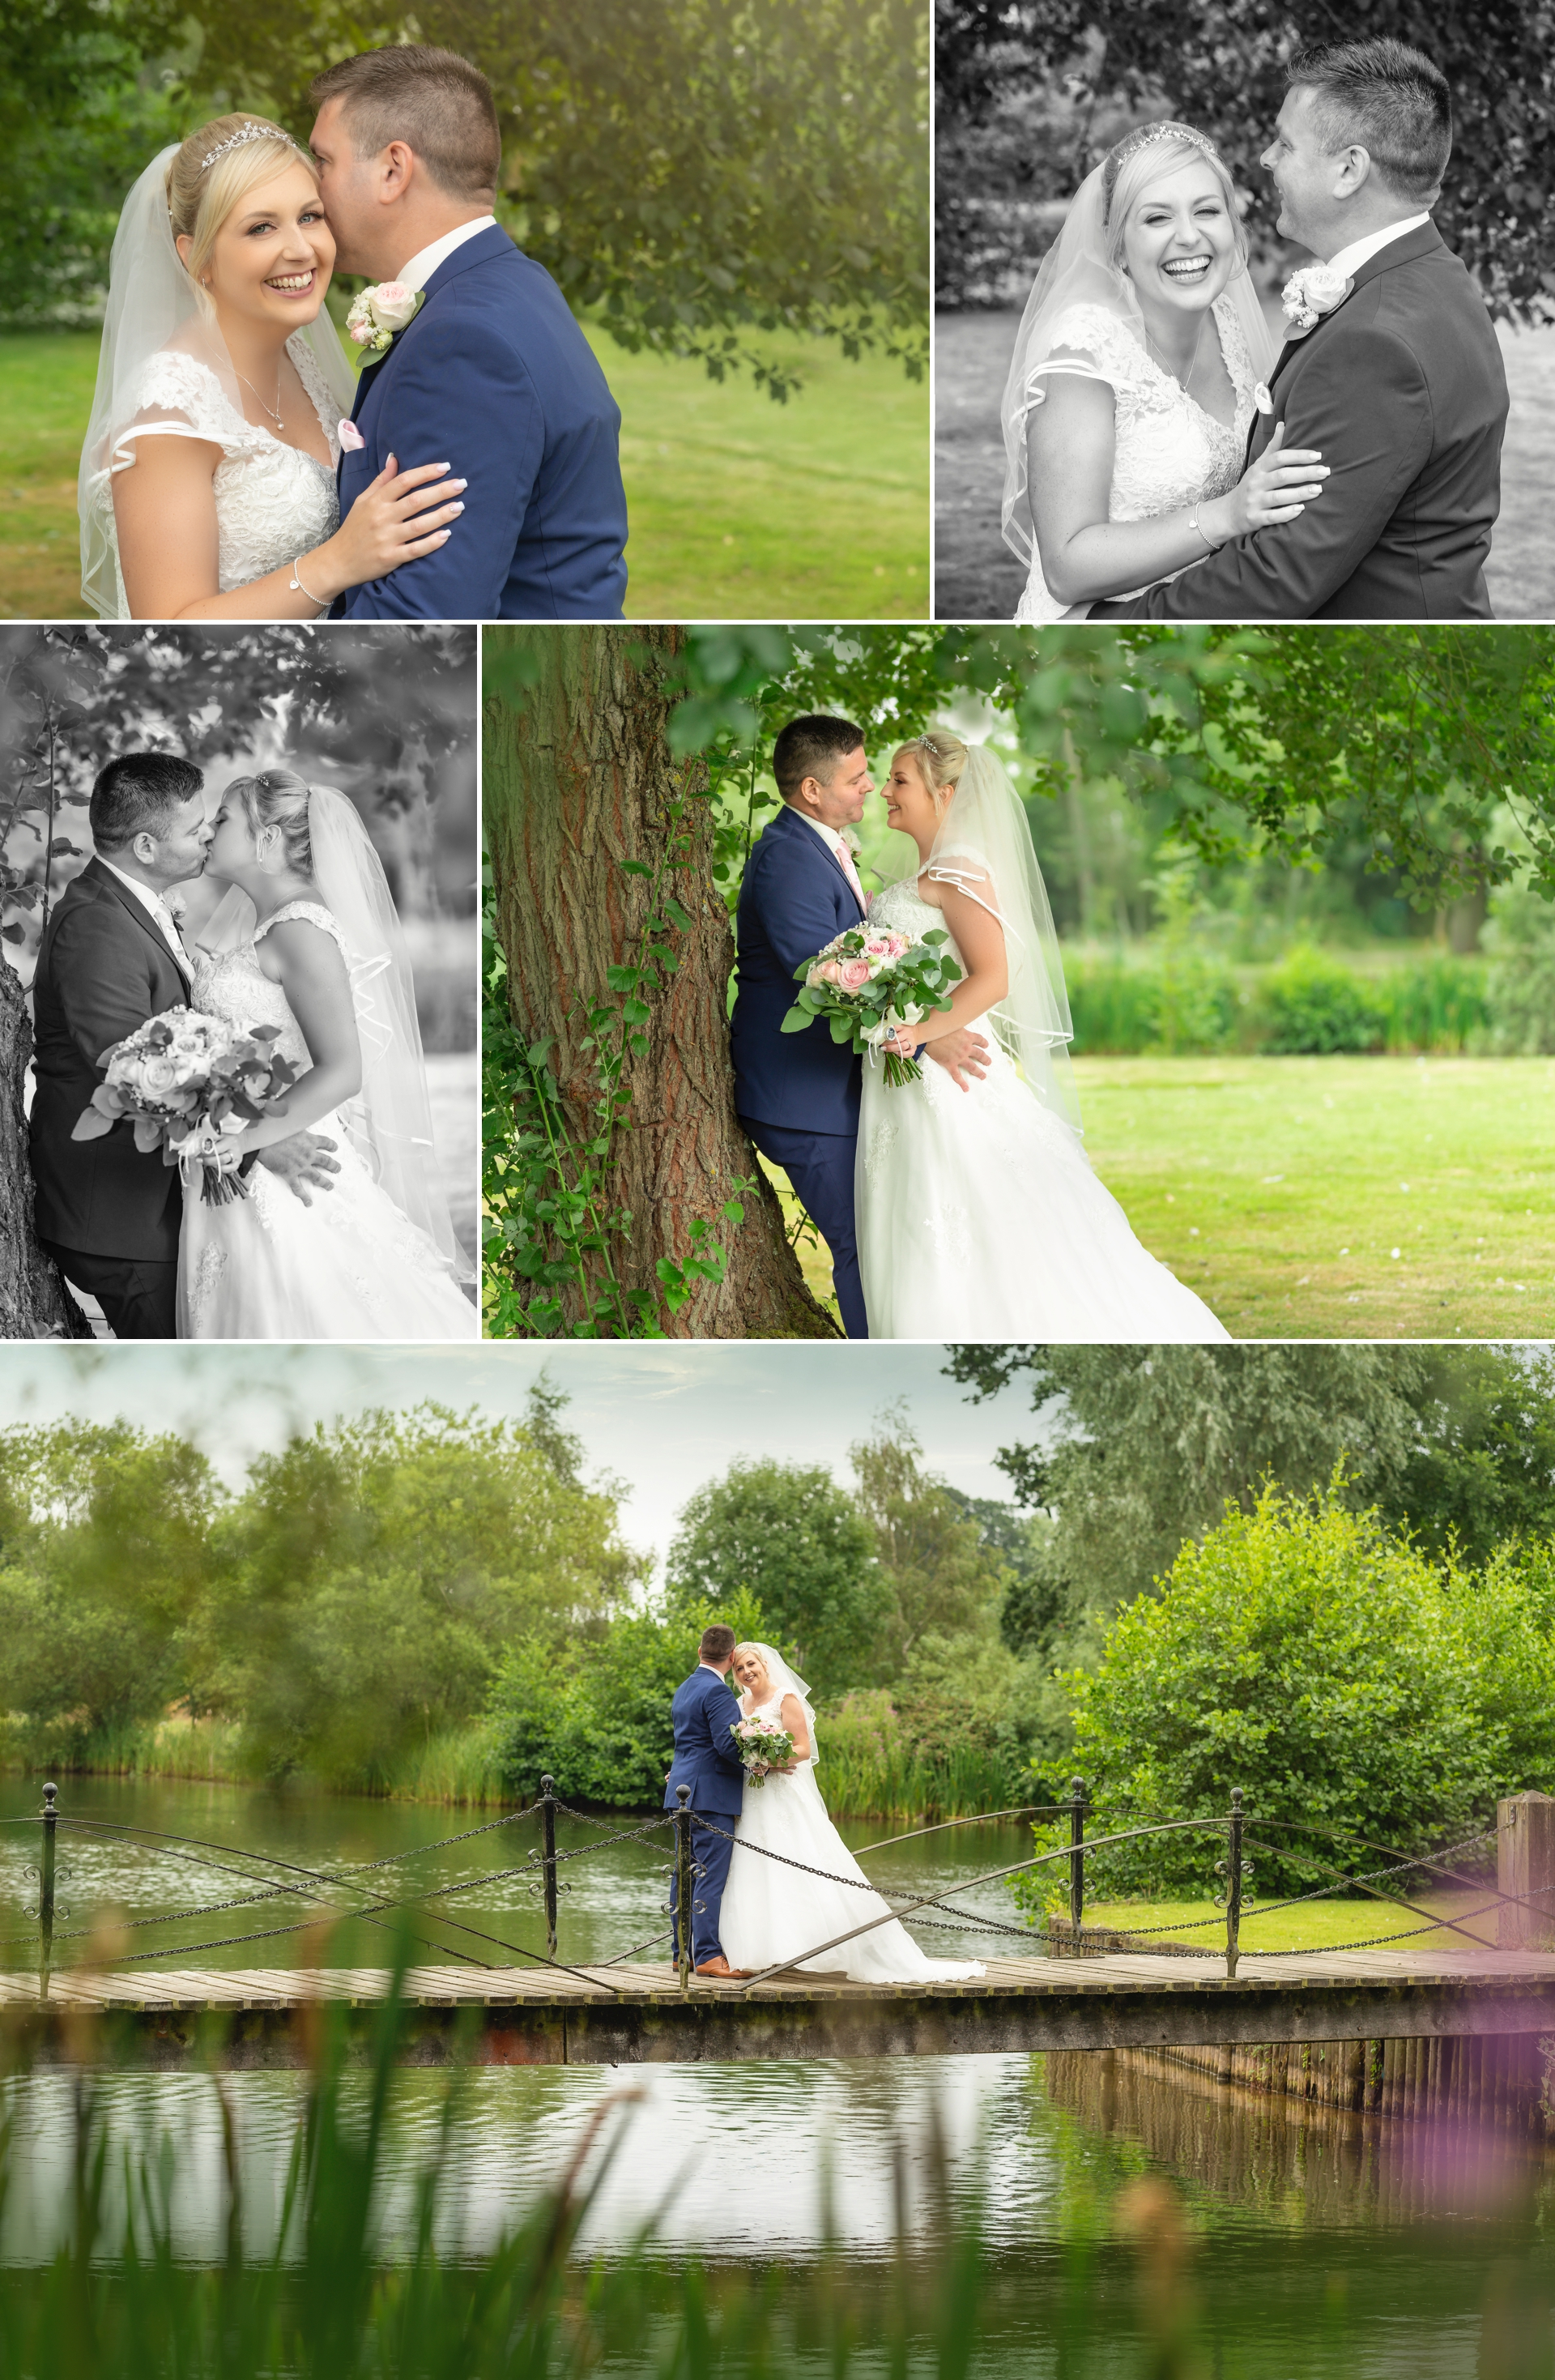 Beautiful bride & groom images from Ardencote manor